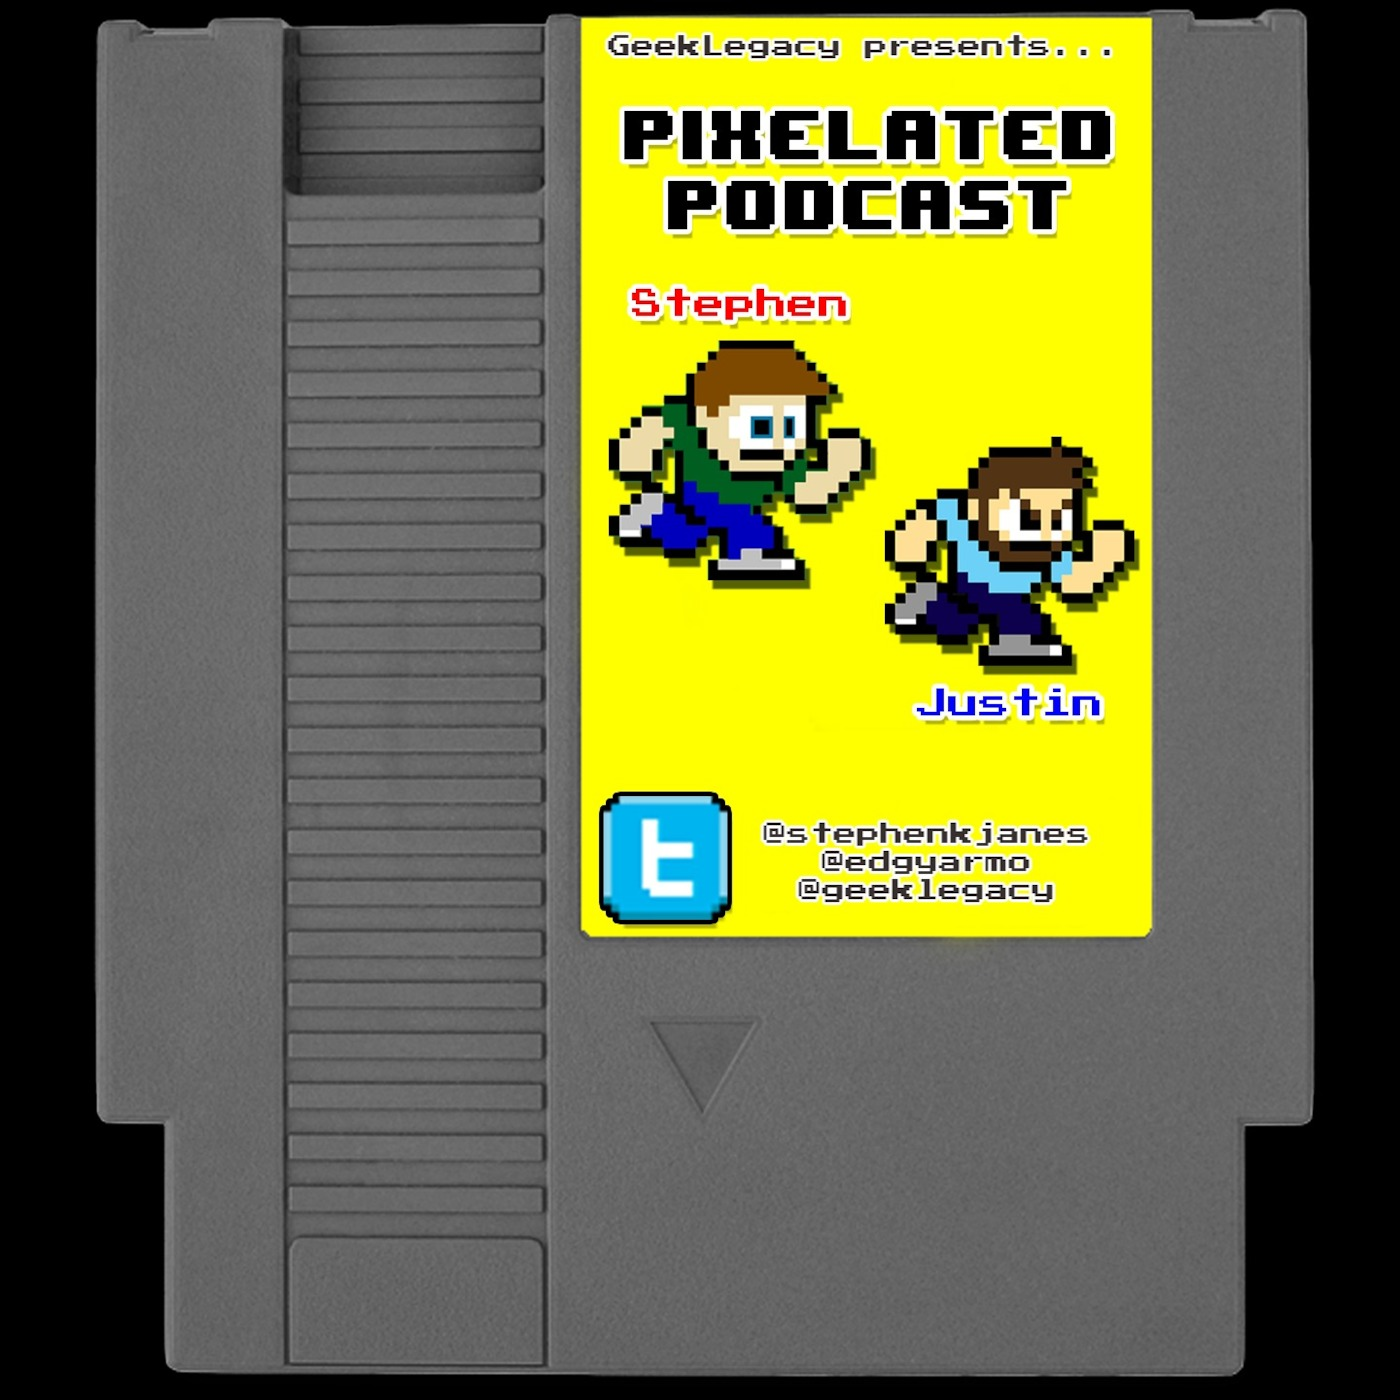 Geek Legacy's Pixelated Podcast